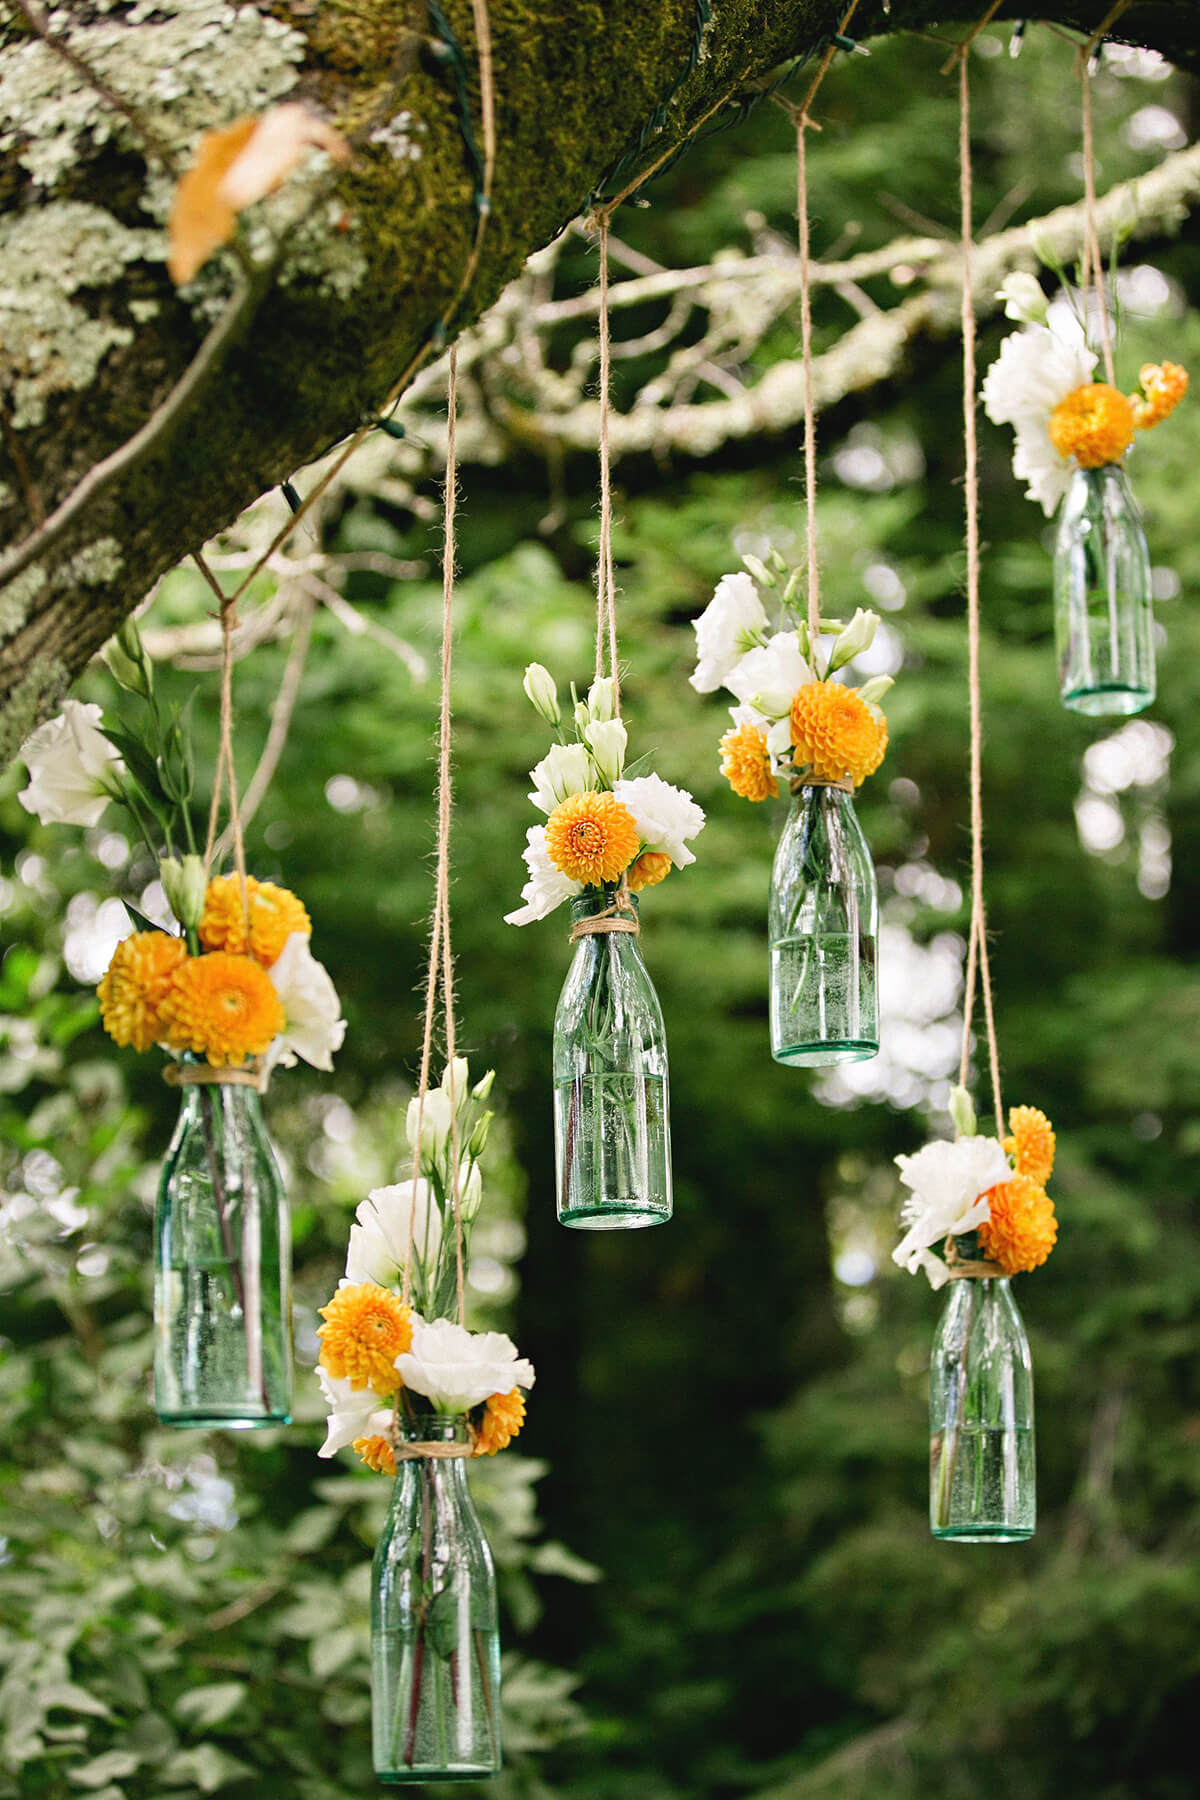 19. Go Green – Glass Bottle Vases and Buds